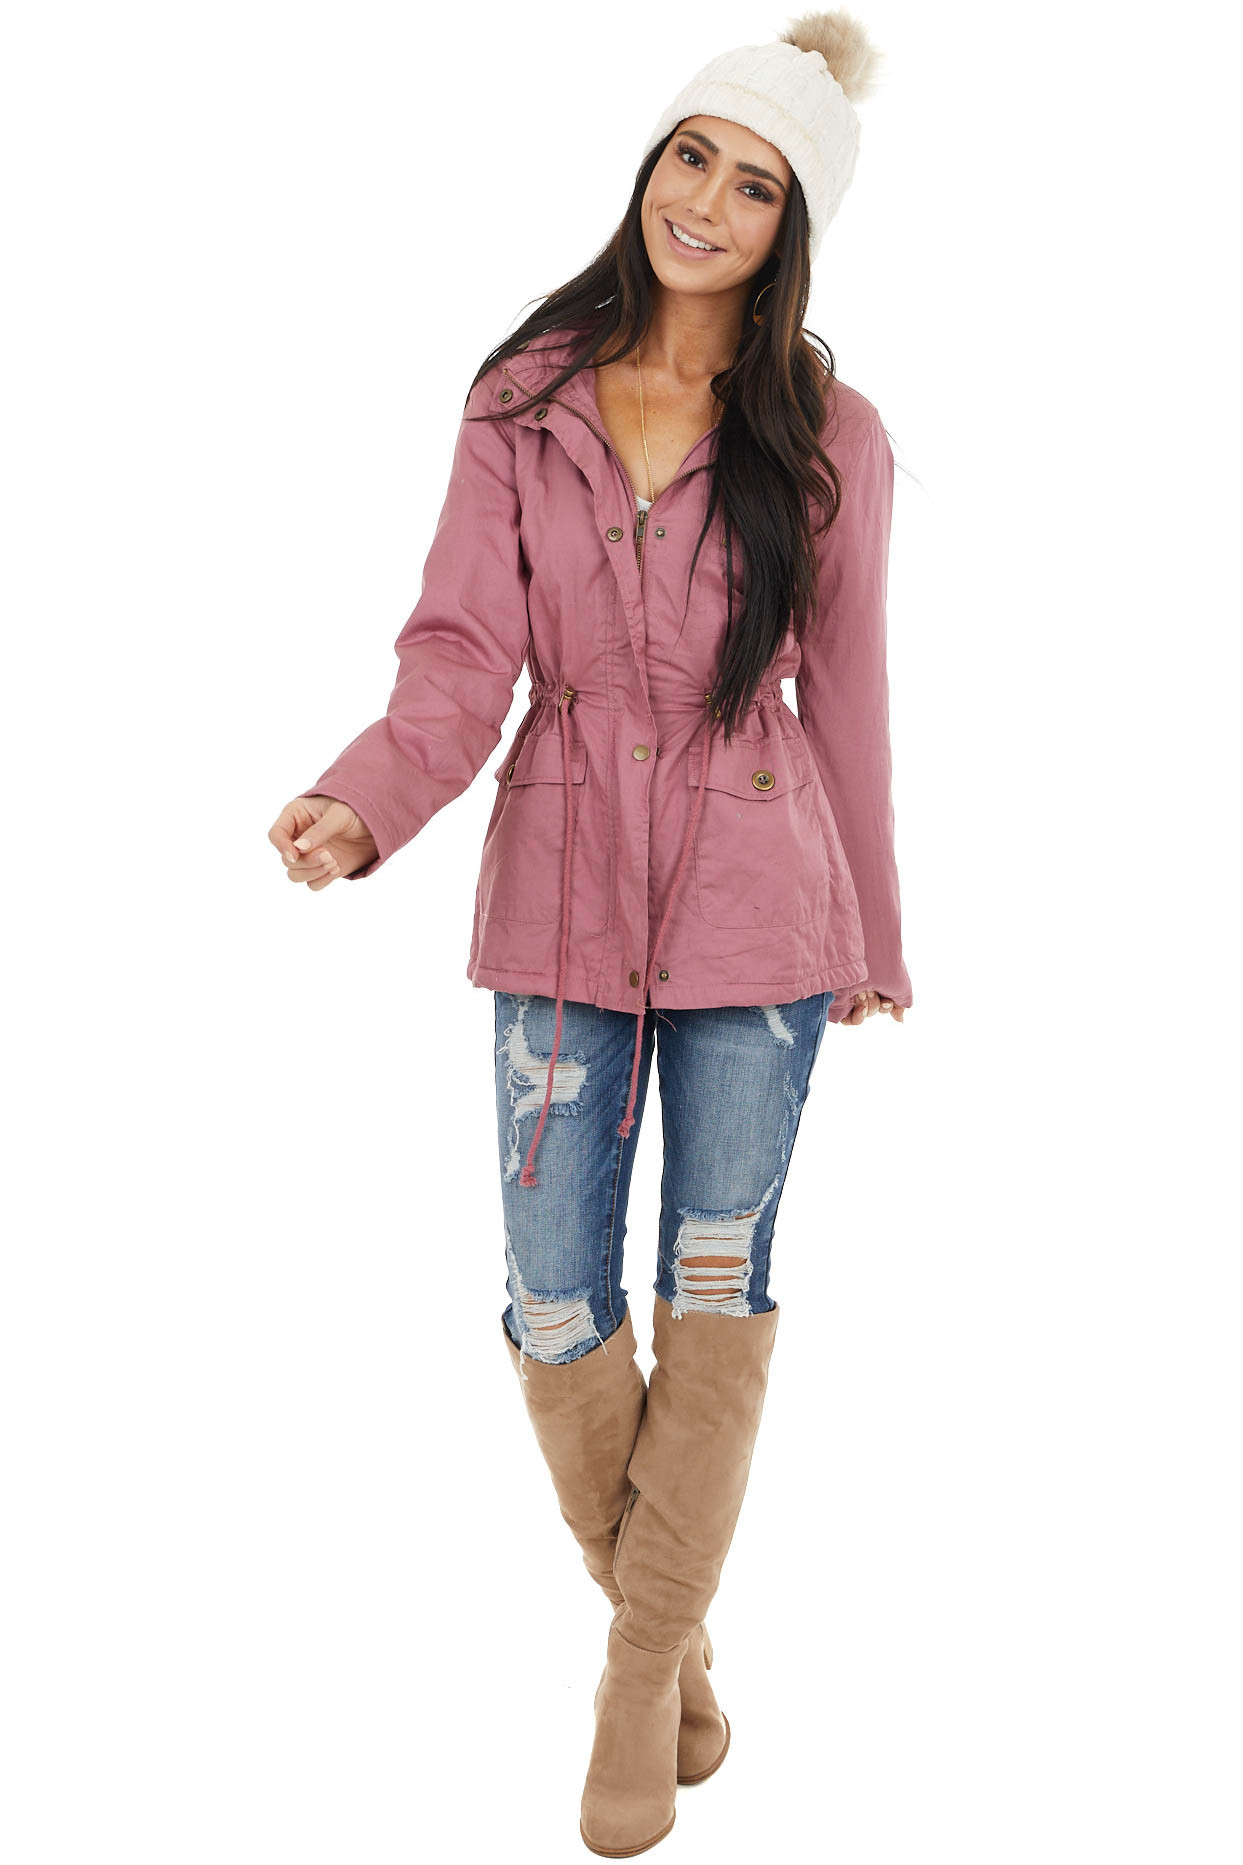 Dusty Rose Anorak Jacket with Faux Fur Lining and Front Tie